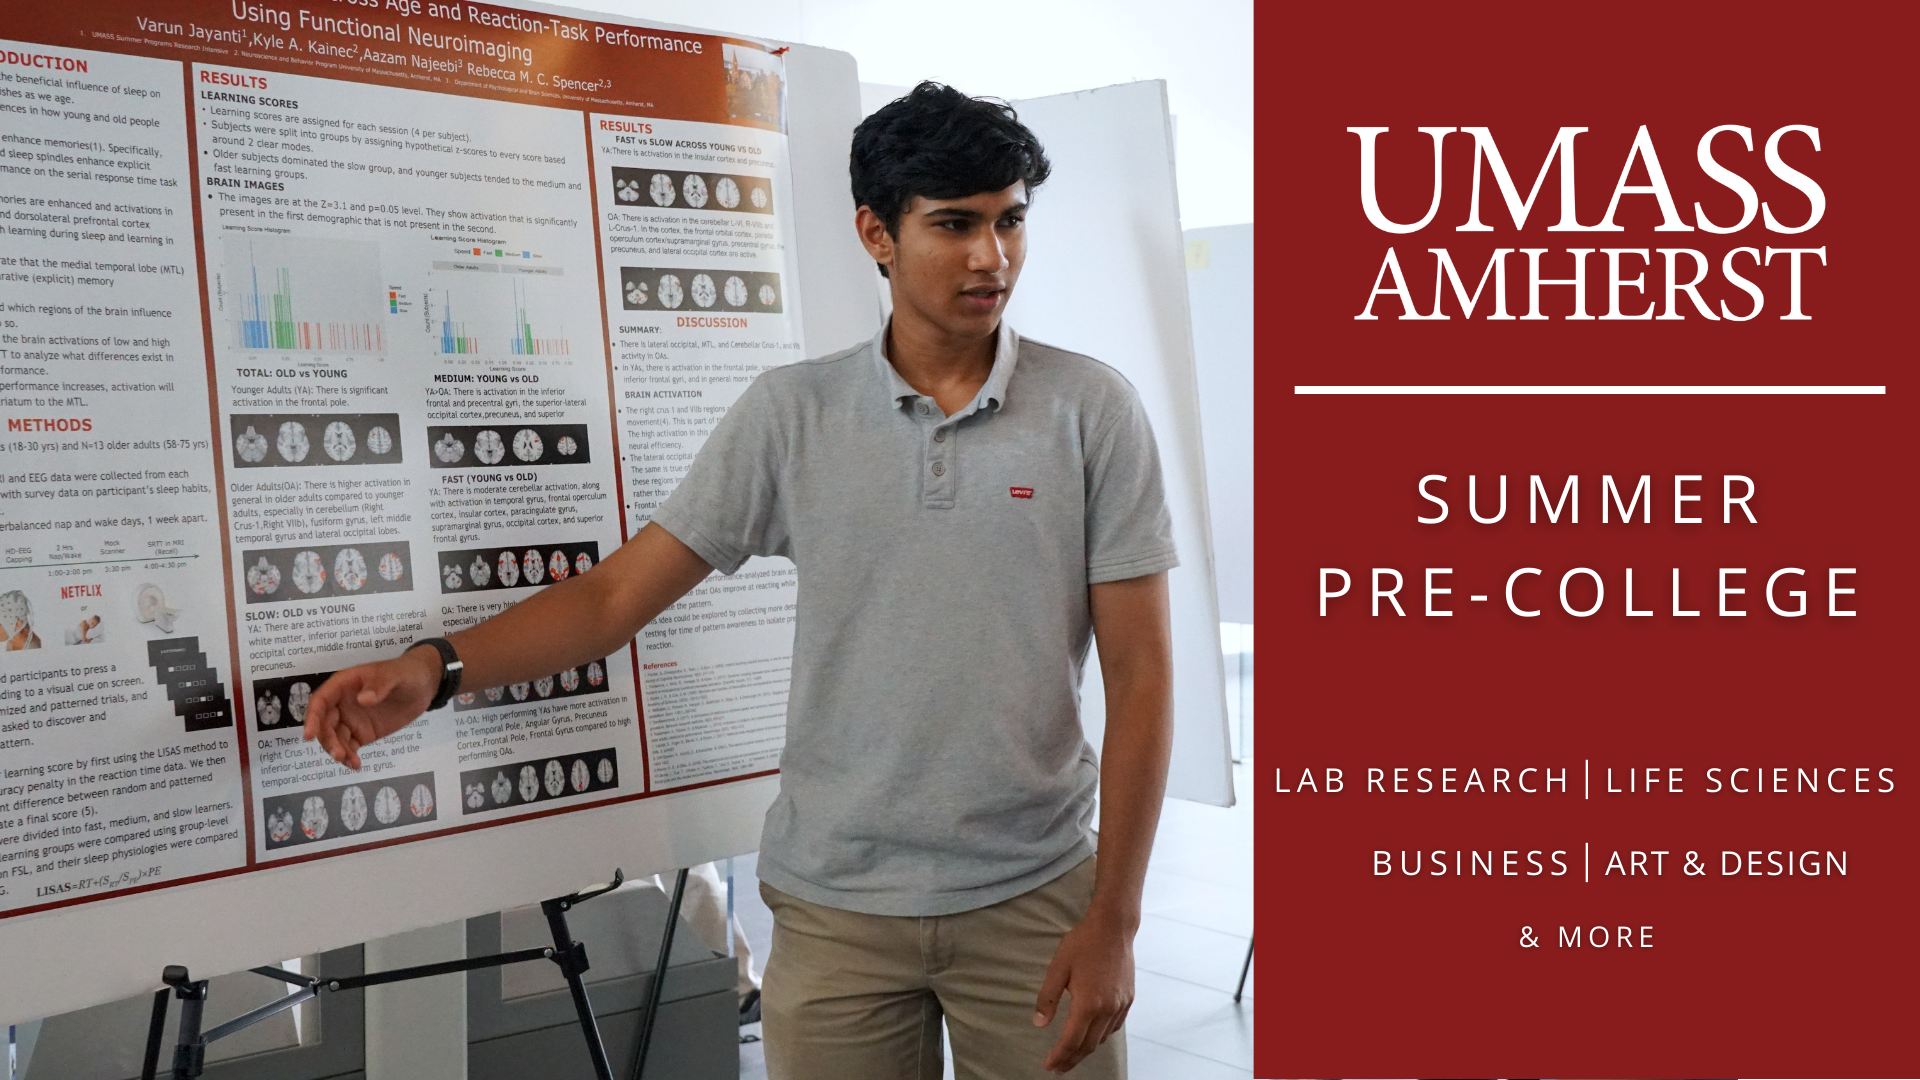 Summer Program - Science | UMass Amherst Summer Pre-College: Python with Applications to Physics